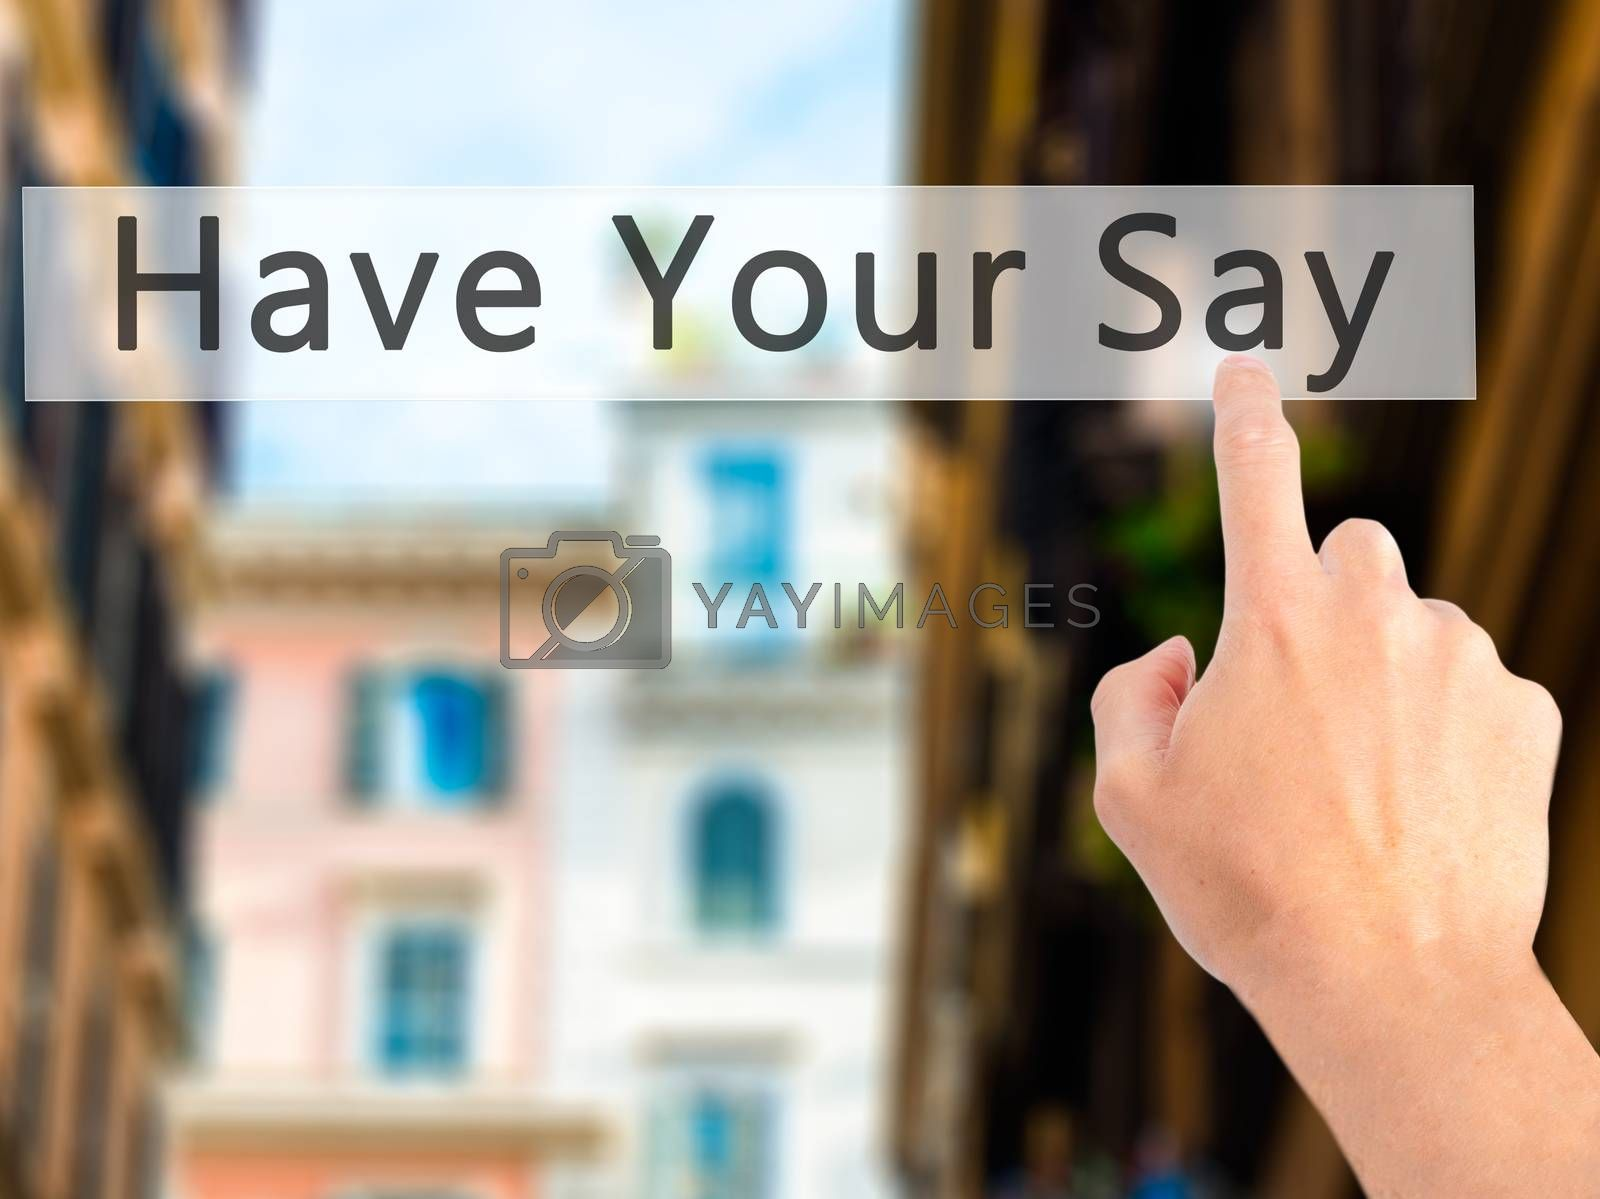 Have Your Say - Hand pressing a button on blurred background con by jackald